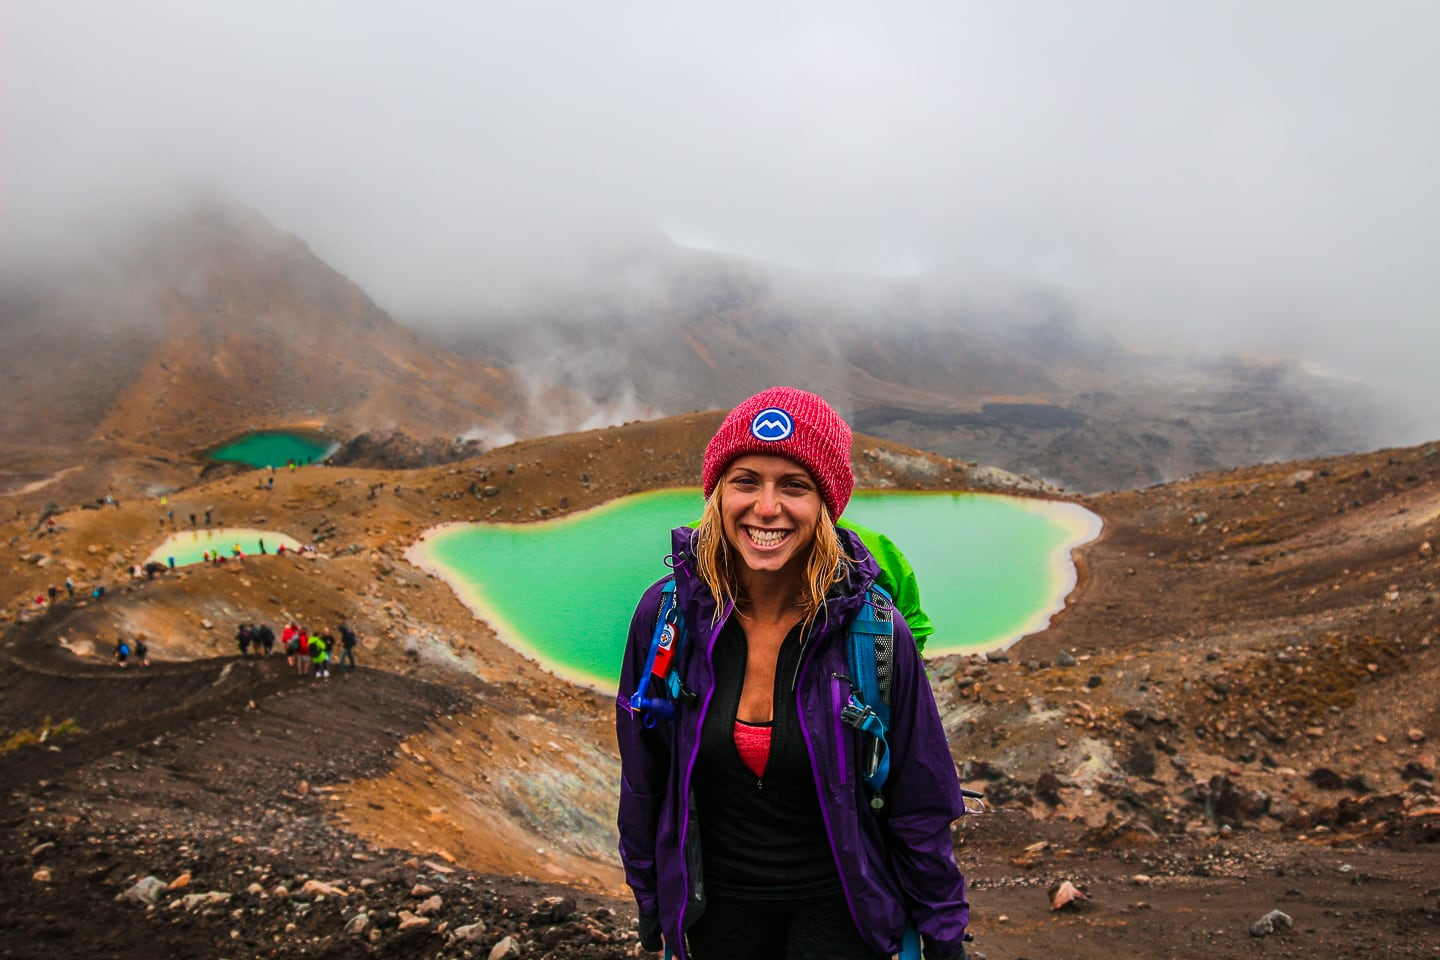 girls stands in front of a green lake wearing a purple rain jacket and red beanie; the lake is bright green, but otherwise the landscape is surrounded by fog